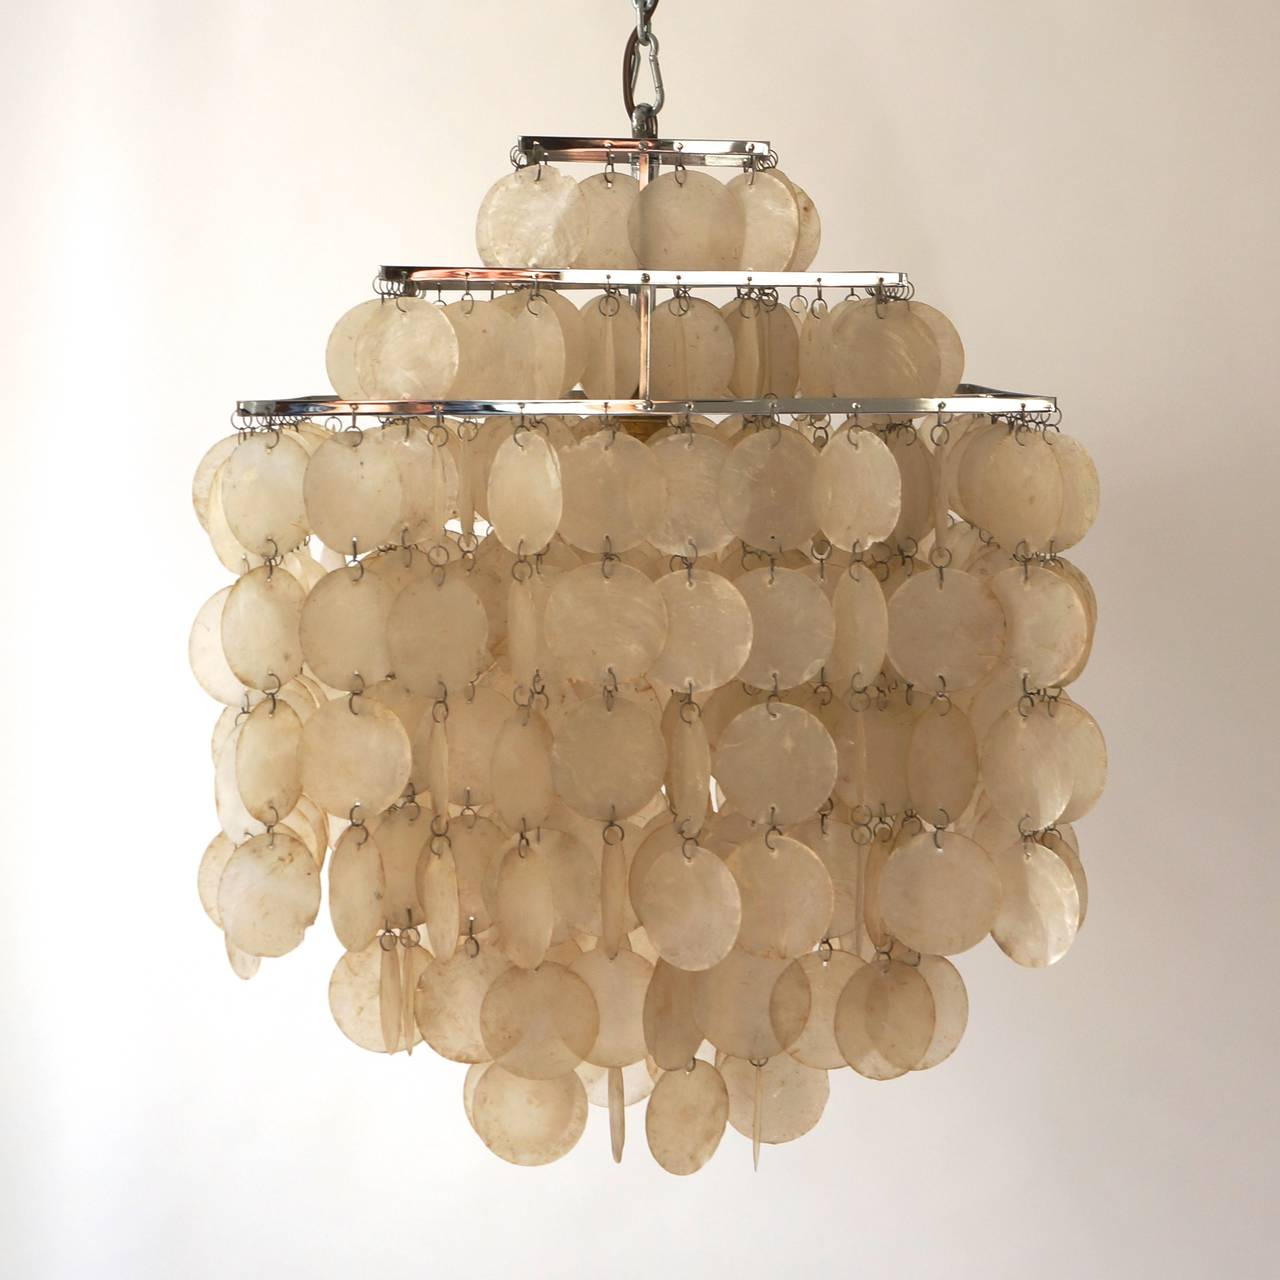 capiz shell chandelier by verner panton 4 - Capiz Shell Chandelier